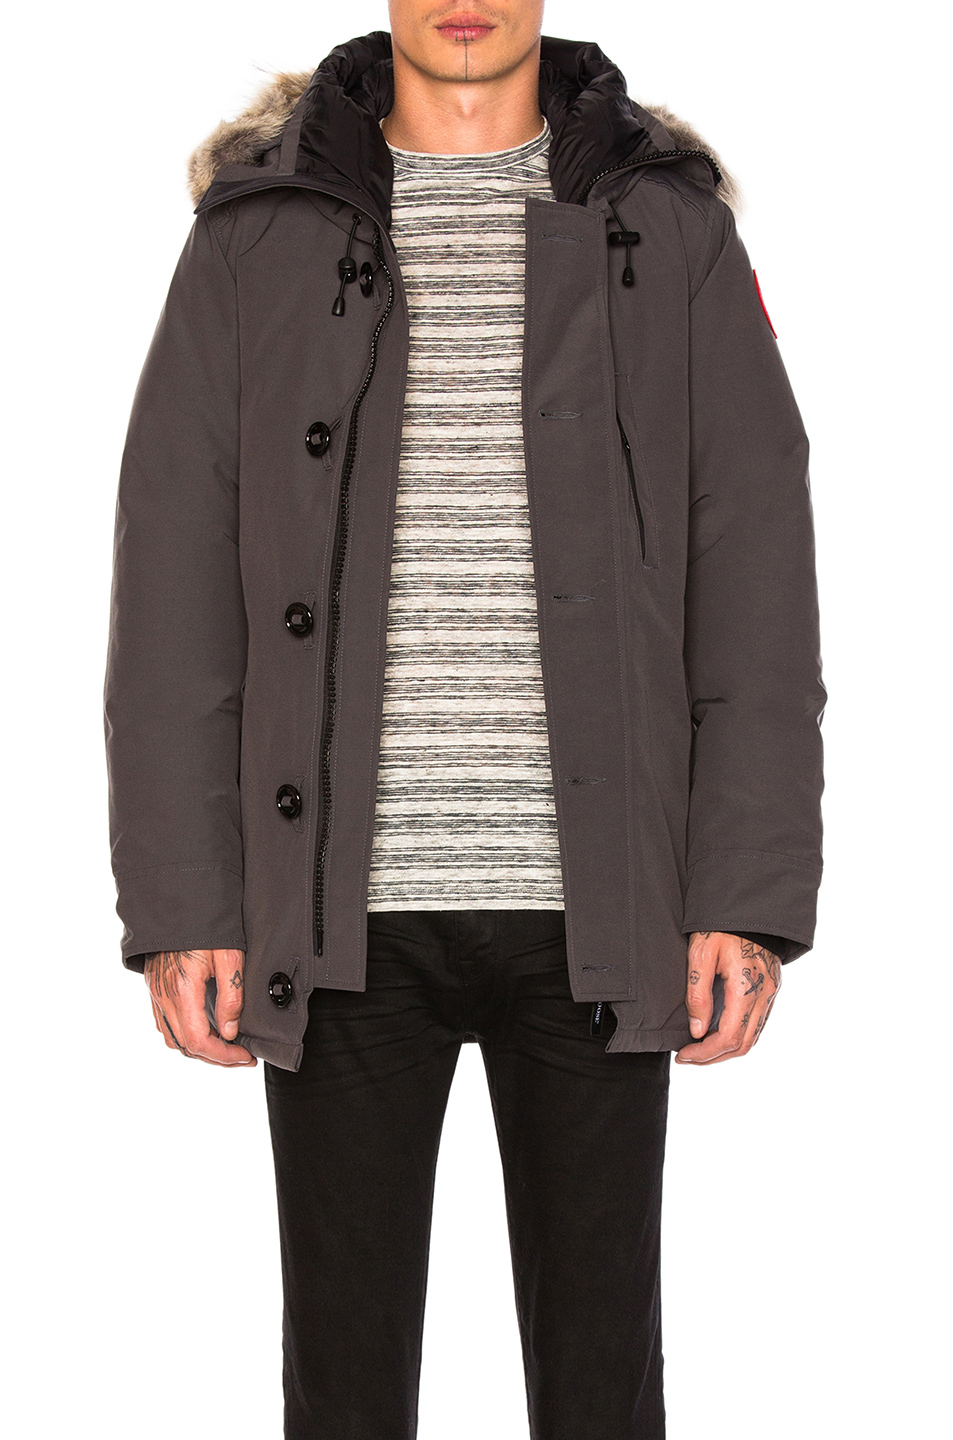 Canada Goose Chateau Parka in Gray